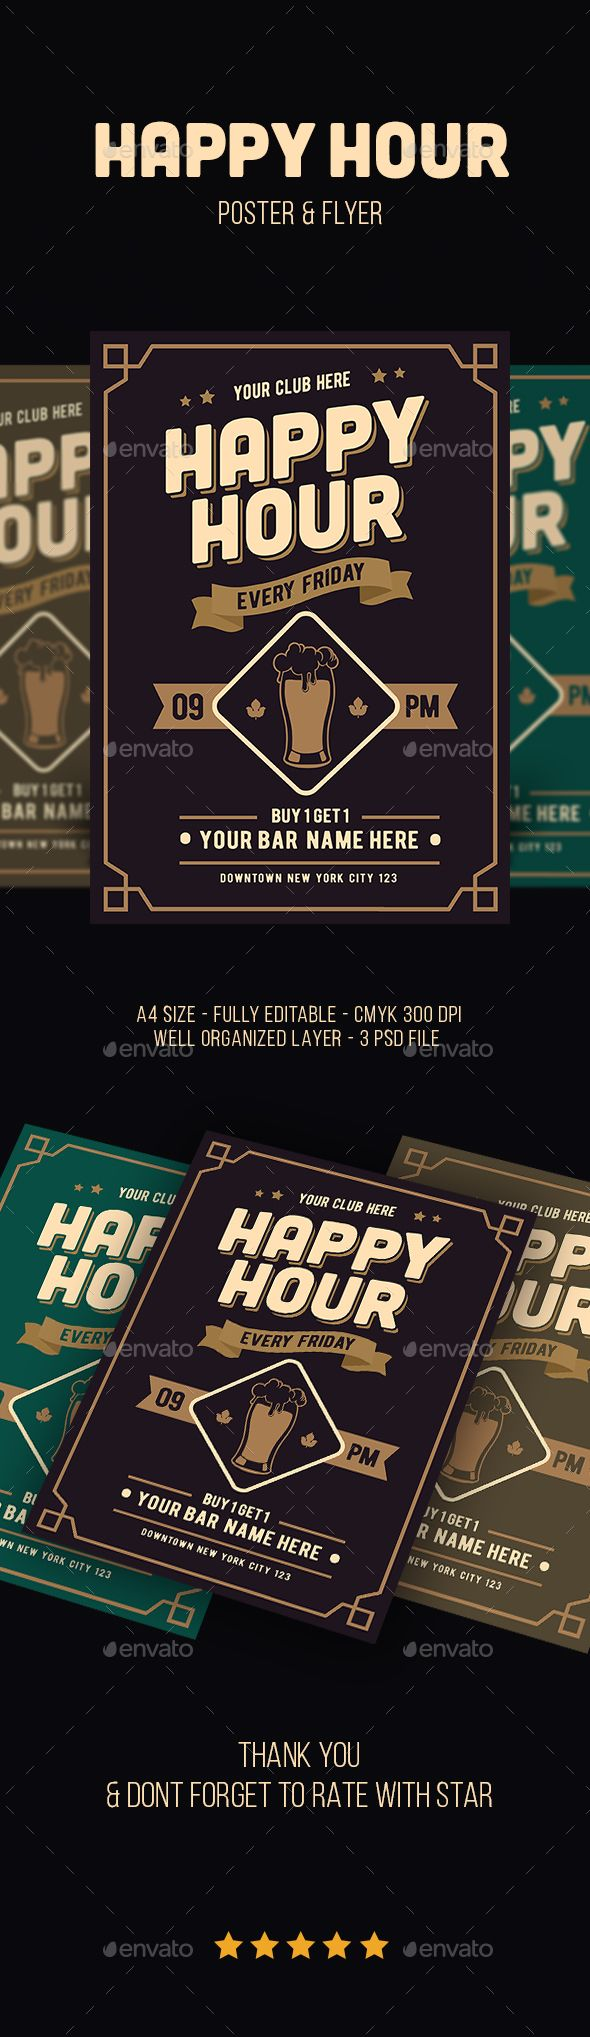 "Classic Happy Hour Drinks Flyer Thank for Purchasing . ""Classic Happy Hour Drinks Flyer"". This 3 Psd file set on 210 mm x 297 mm (A4)   bleed. 100 ready to print with 3 colors variation and well organized in layers.You can easily change everything like color, image, text and elements Font used :"